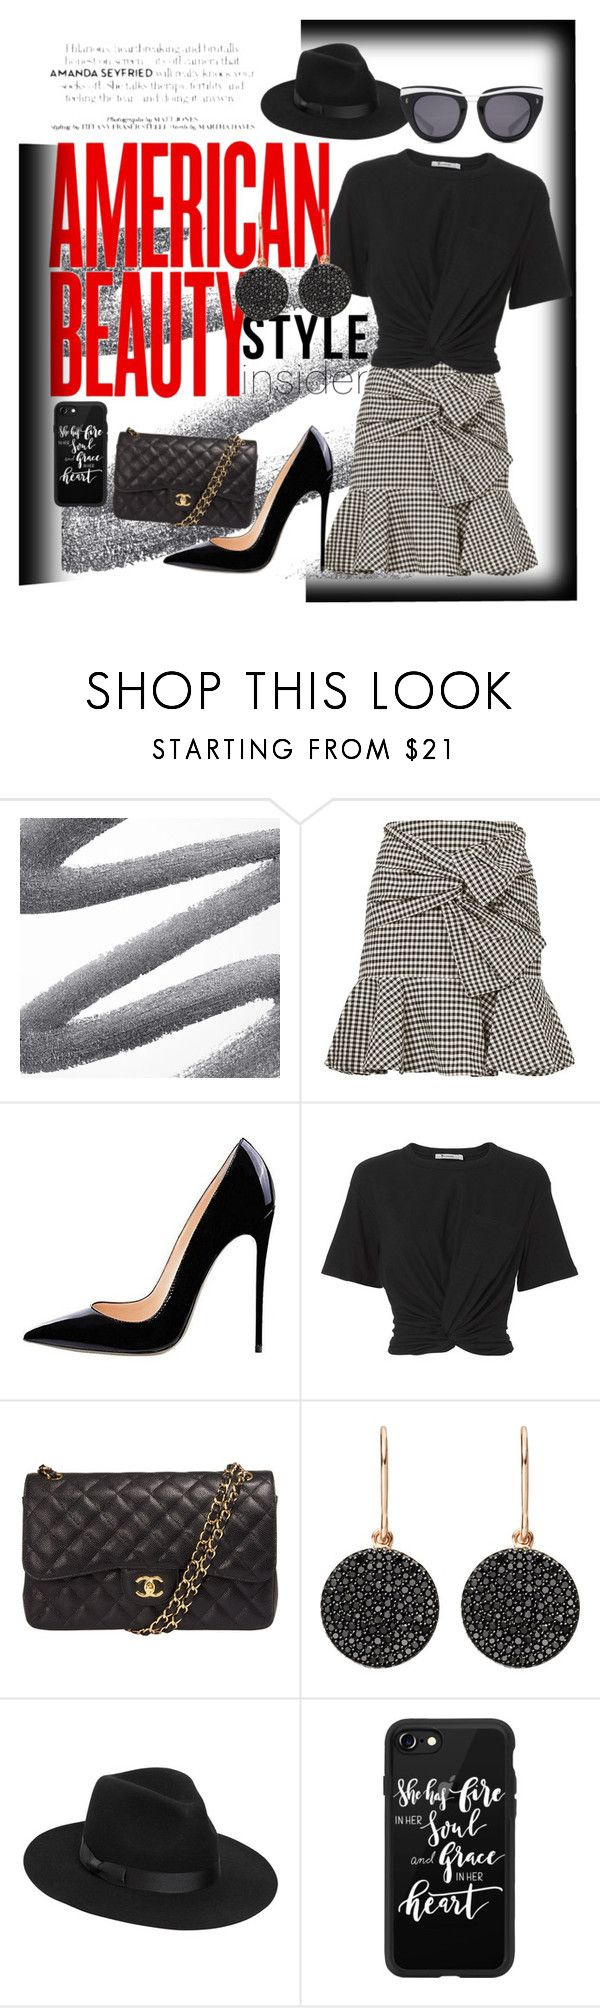 """Black and white Fun 👗👠"" by aasisterstouch ❤ liked on Polyvore featuring Veronica Beard, T By Alexander Wang, Chanel, Astley Clarke, Lack of Color, Casetify and HOOK LDN"